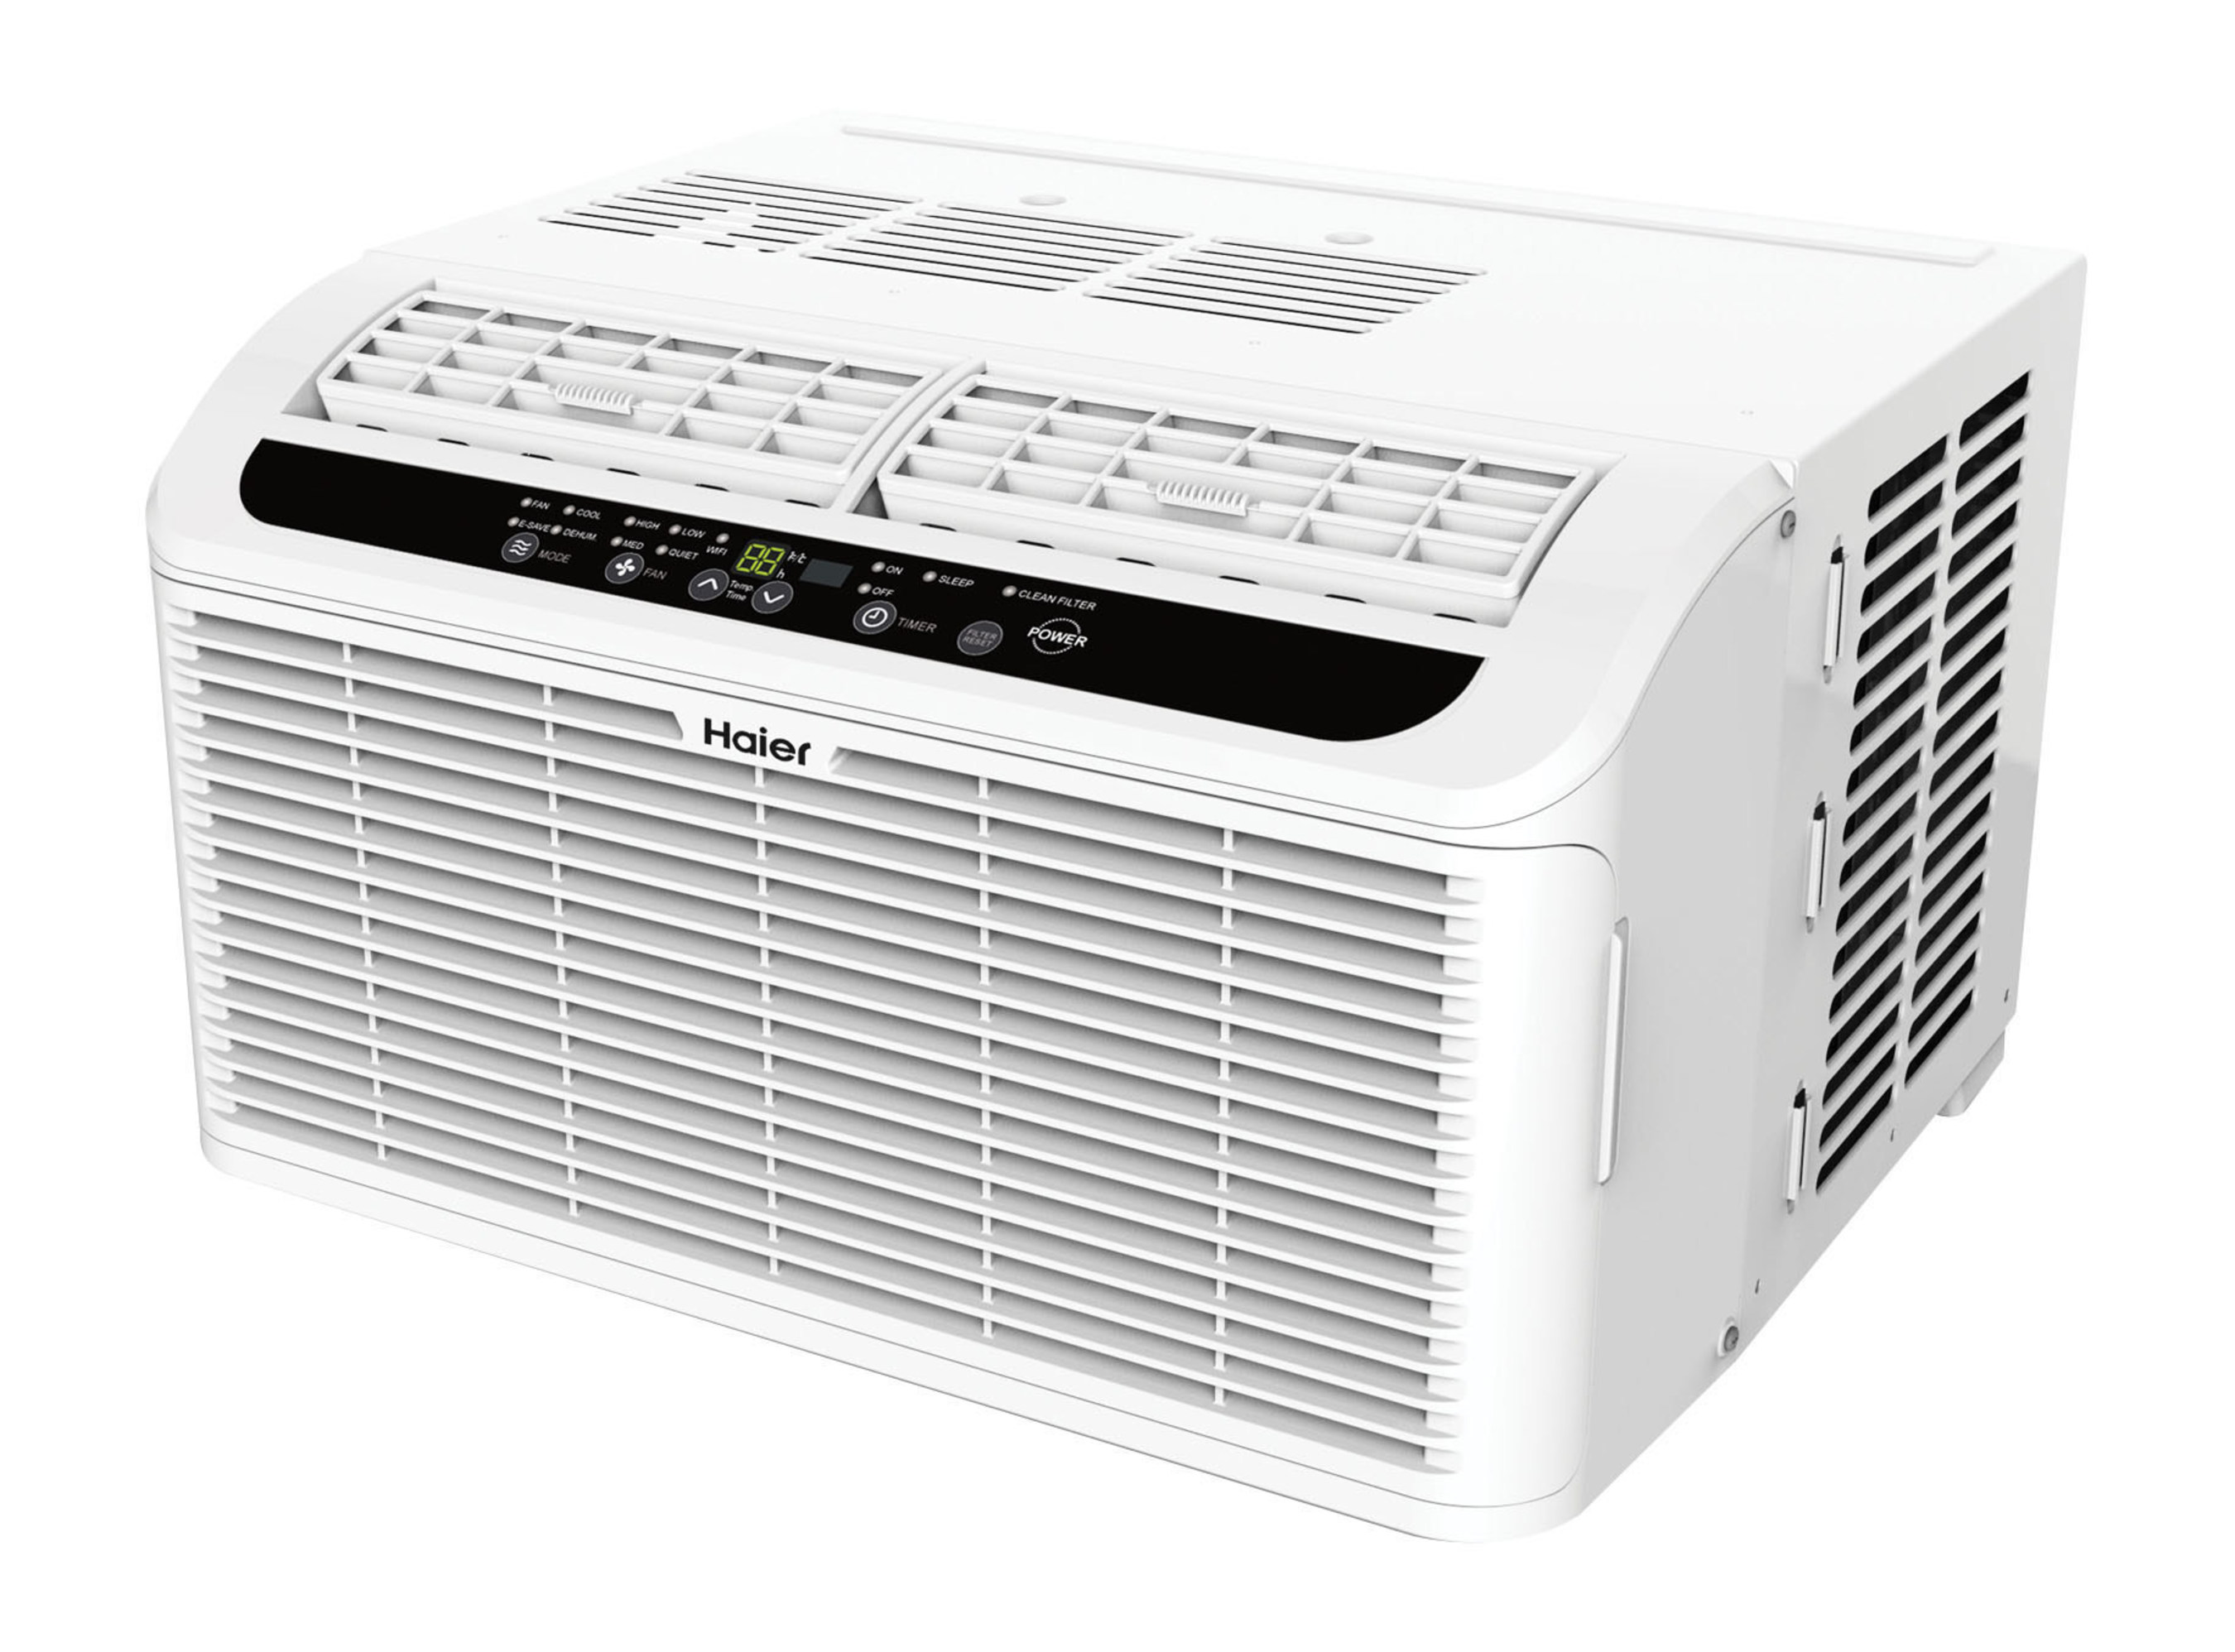 Haier America Launches Quietest Air Conditioner On The Market